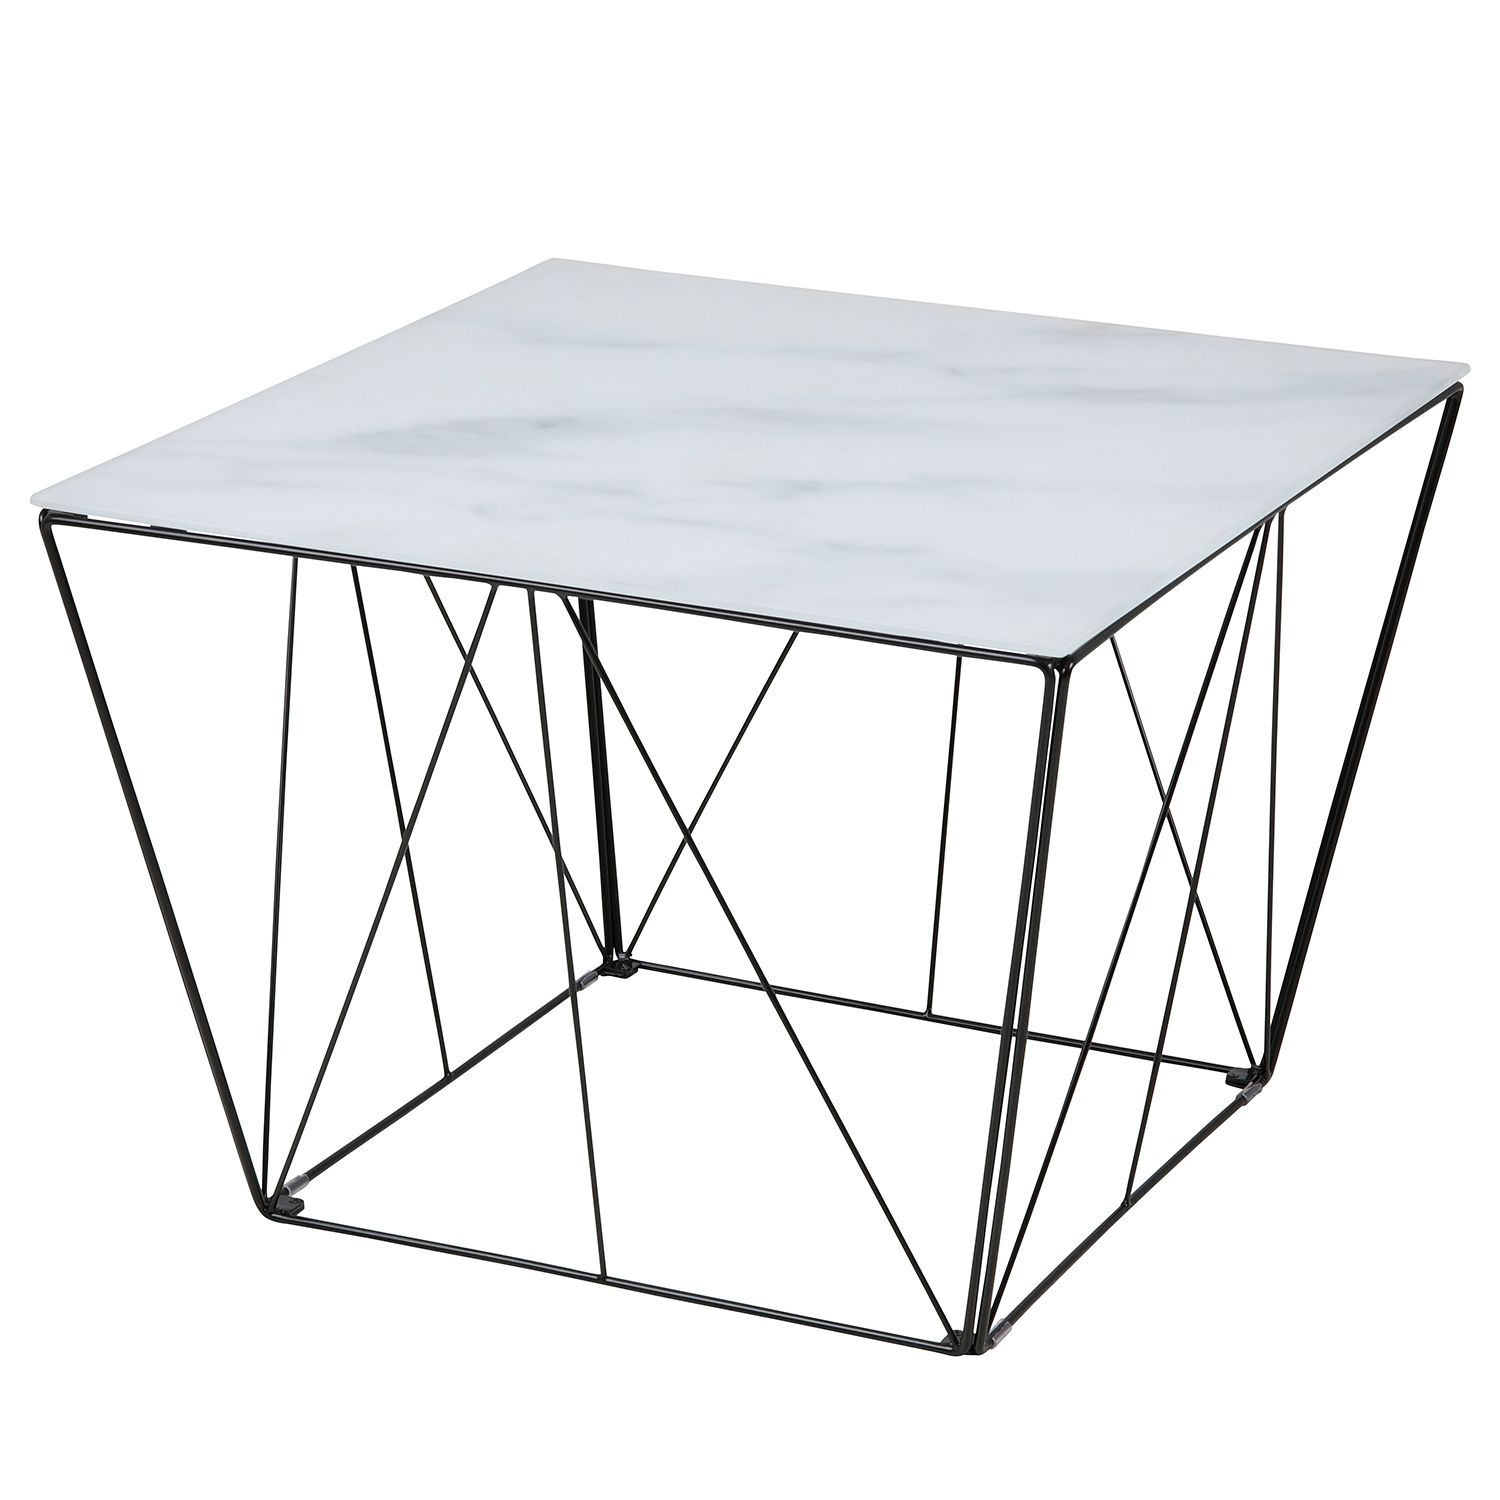 Table basse Solla